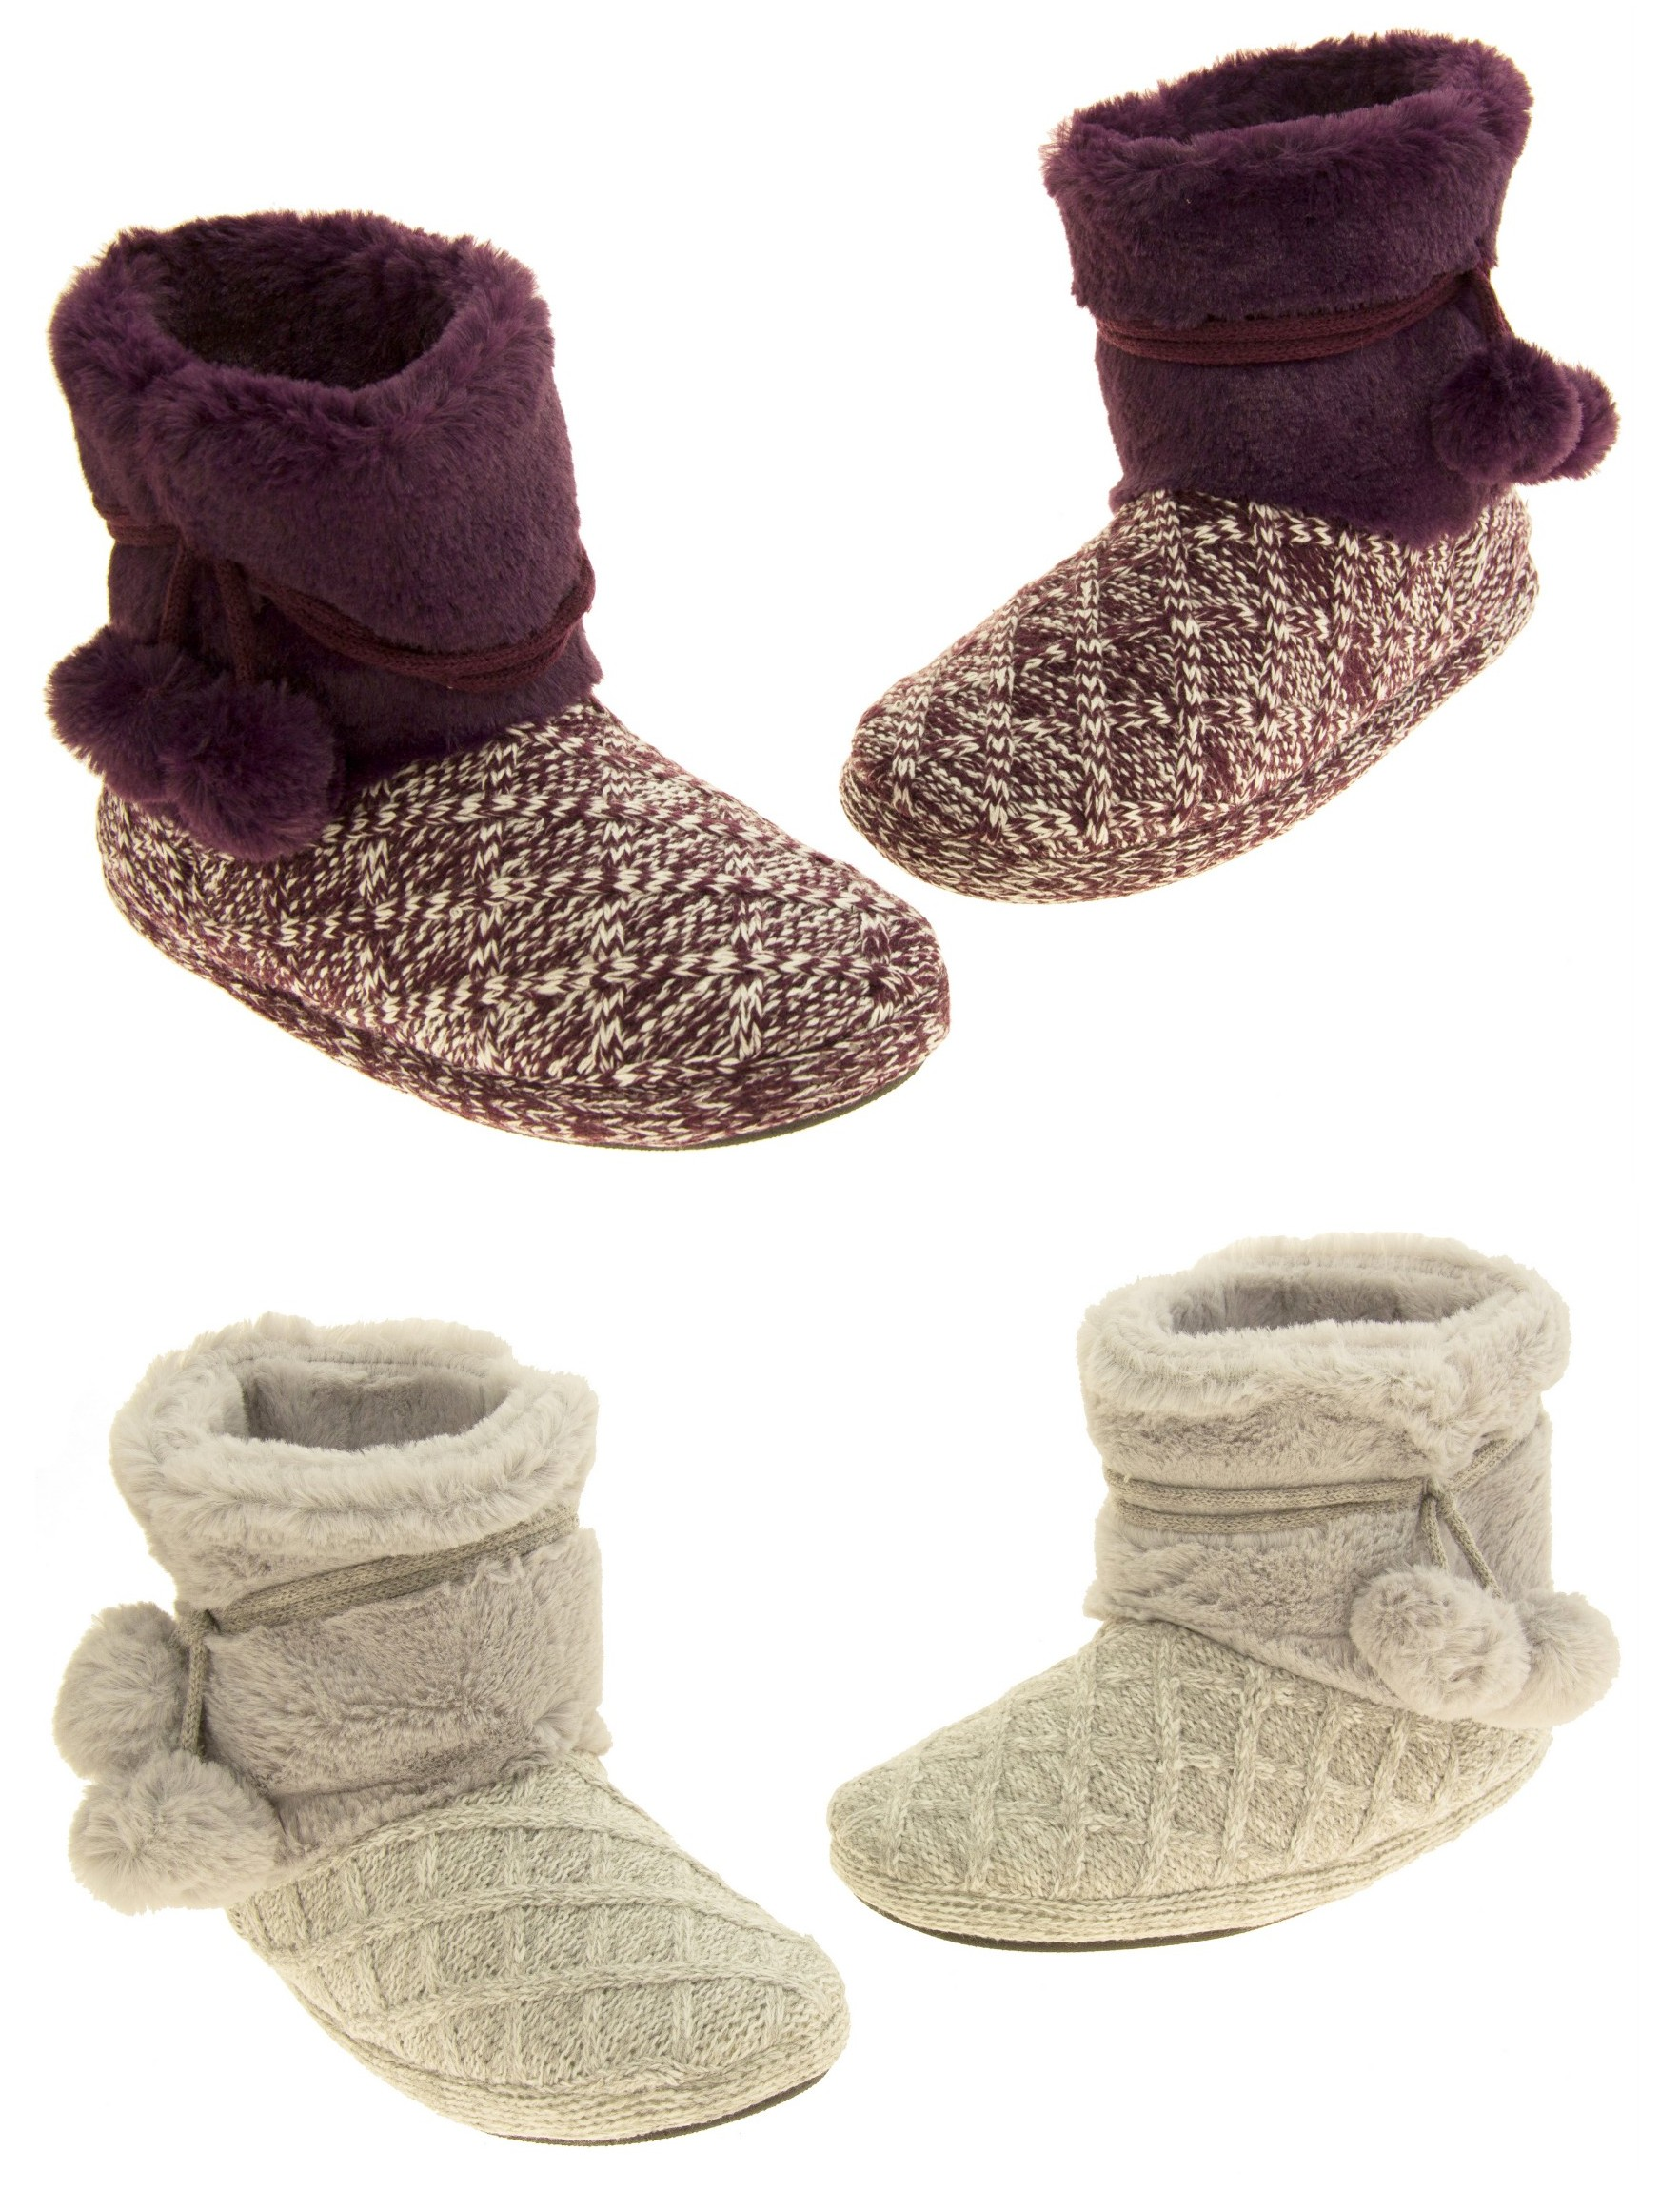 Ladies Coolers Warm Fur Lined Knitted Slipper Boots Size 3 8 Ebay